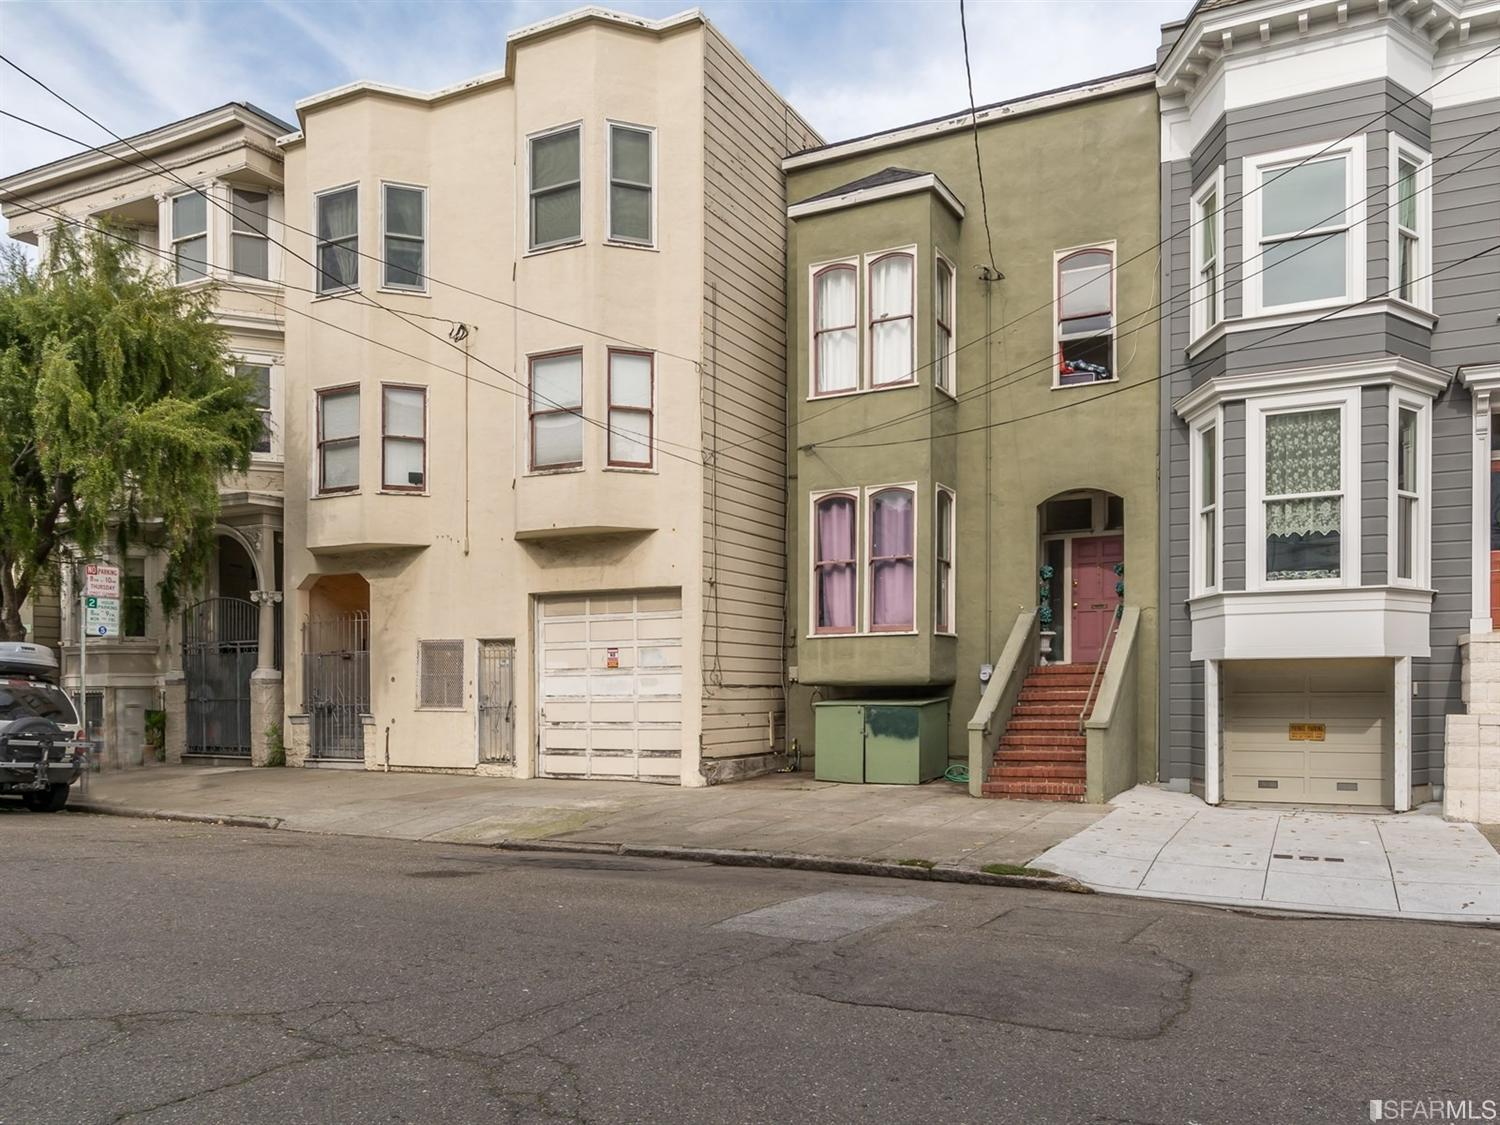 440 Waller St, San Francisco, CA